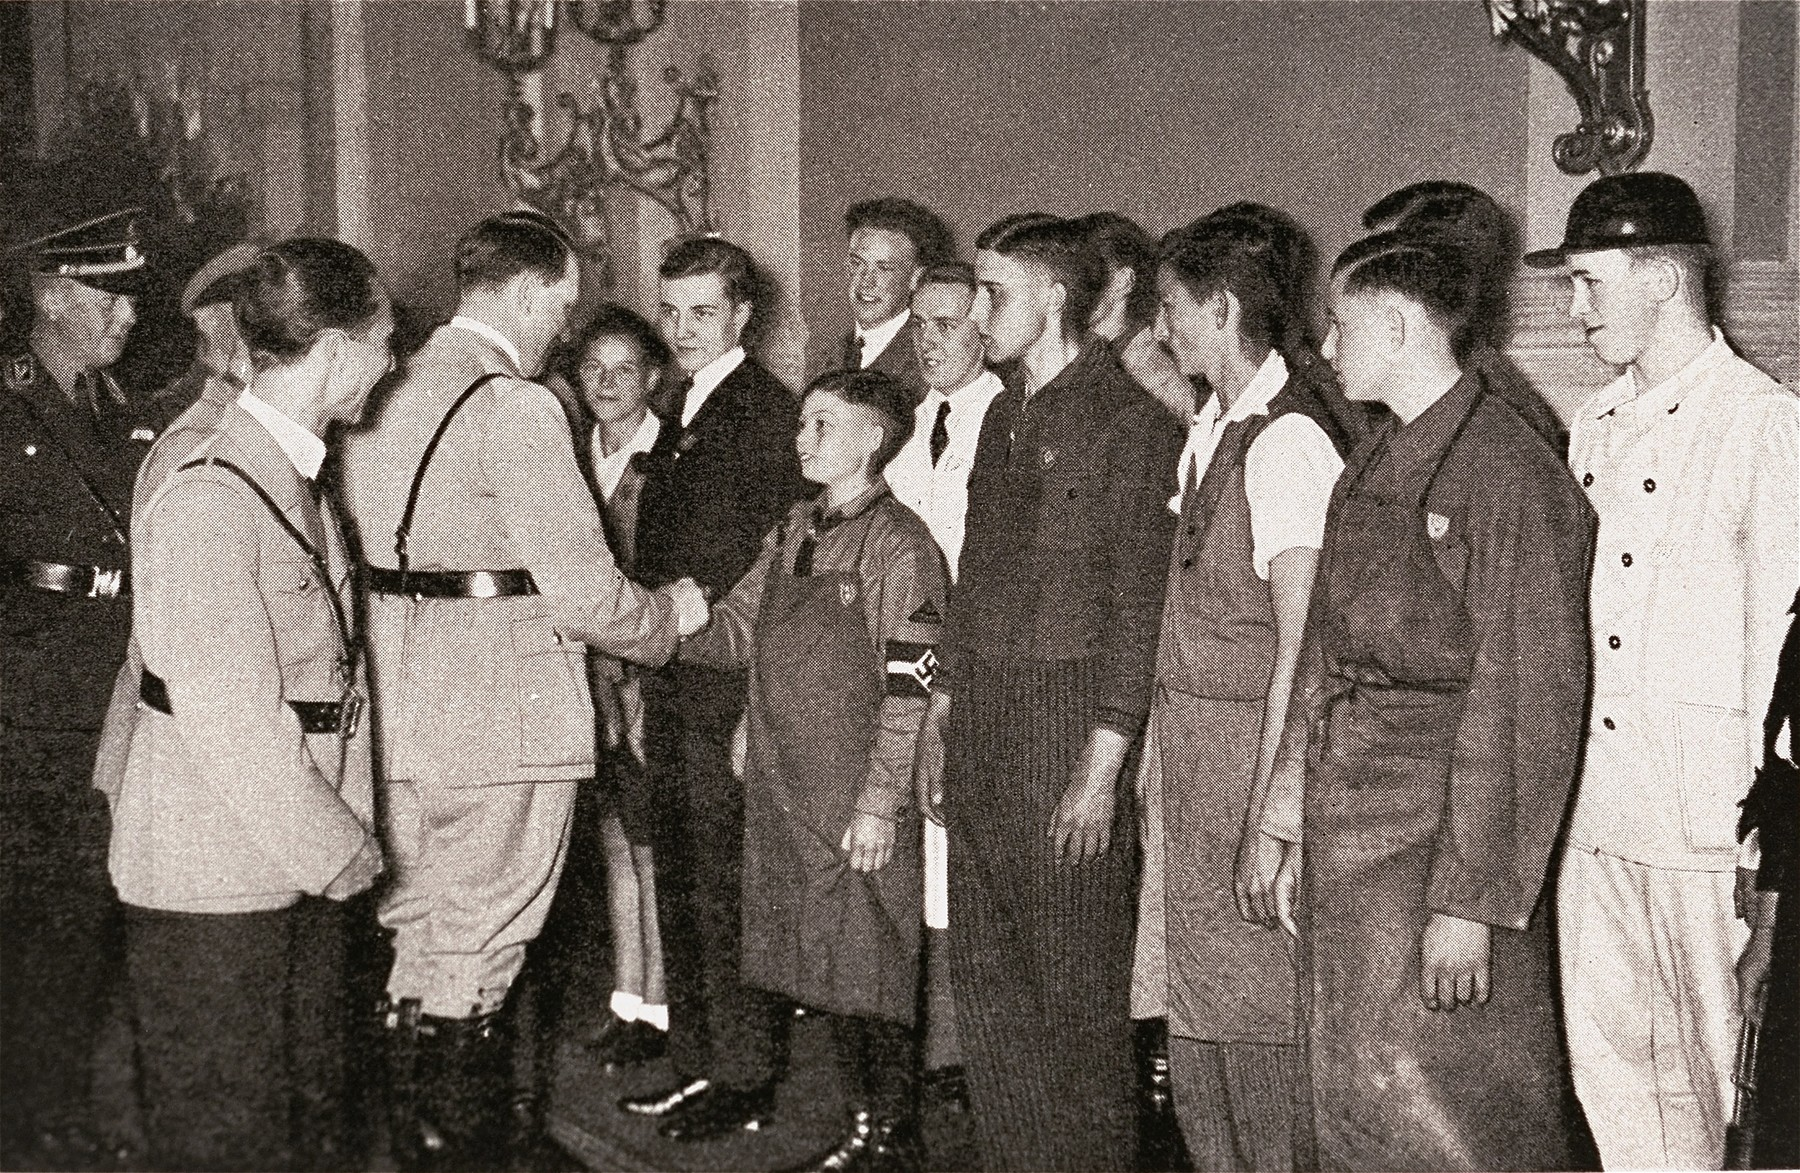 Adolf Hitler greets members of the Arbeiterjugend (Youth Workers) in the Reich chancellery.